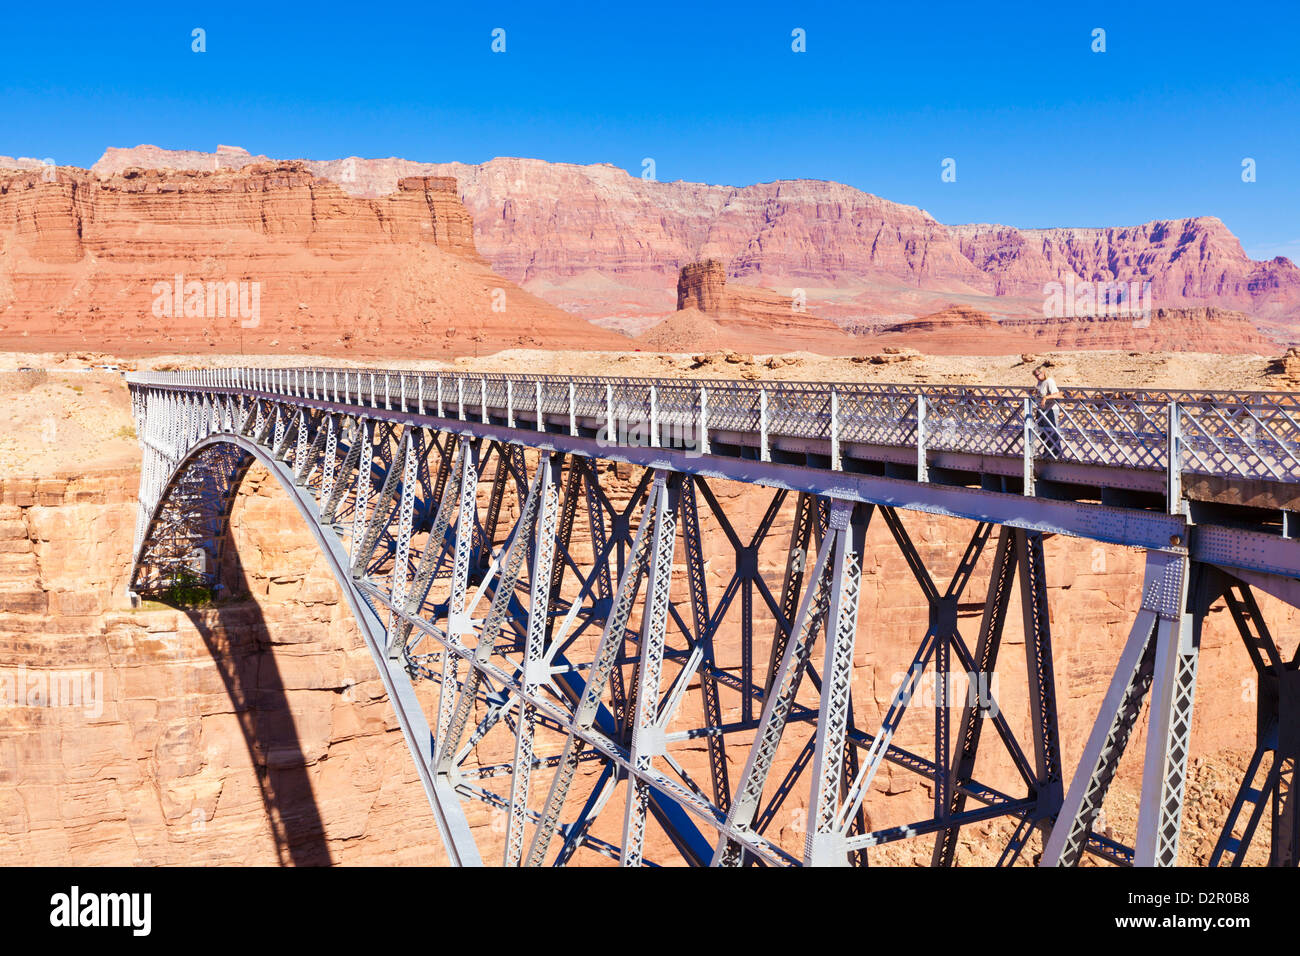 Lone tourist on Old Navajo Bridge over Marble Canyon and Colorado River, near Lees Ferry, Arizona, USA - Stock Image